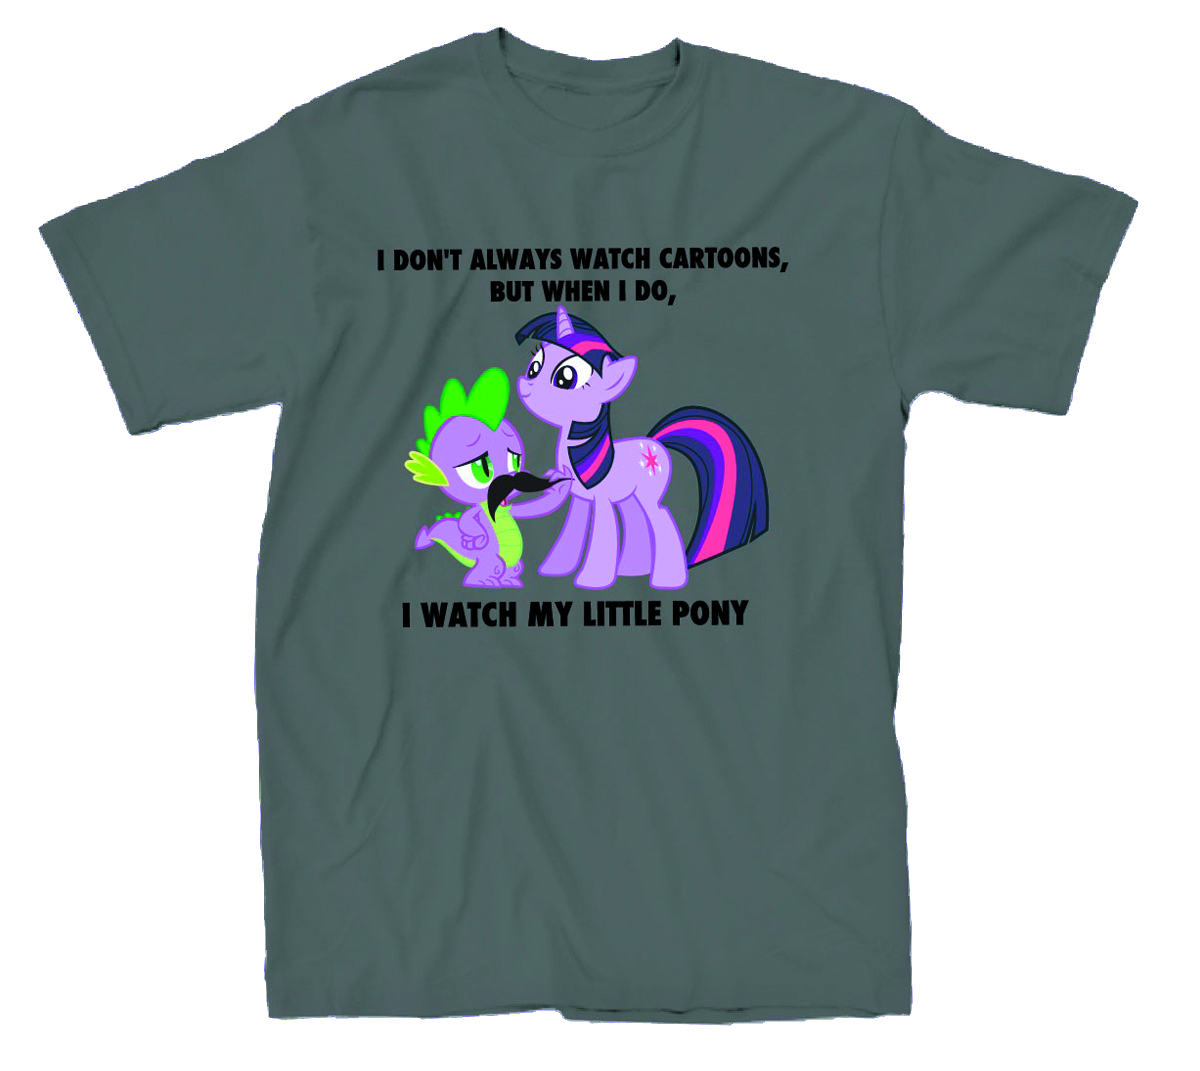 MY LITTLE PONY I WATCH MLP CHARCOAL PX T/S SM